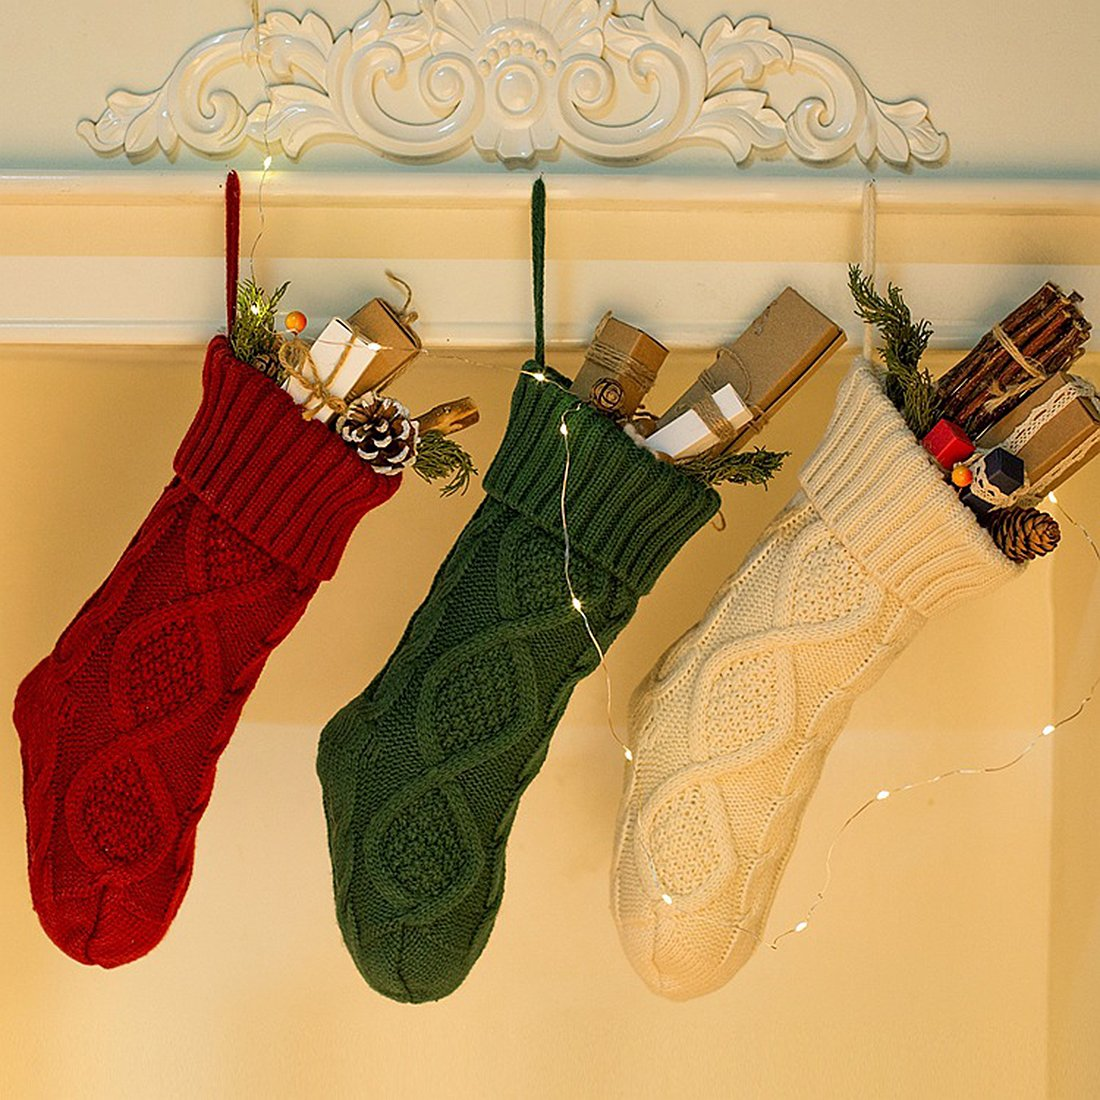 Dailybella 14'' Christmas Knit Hanging Stockings Party Holiday Decorations, Pack of 3 (multicolor, Length 14'')